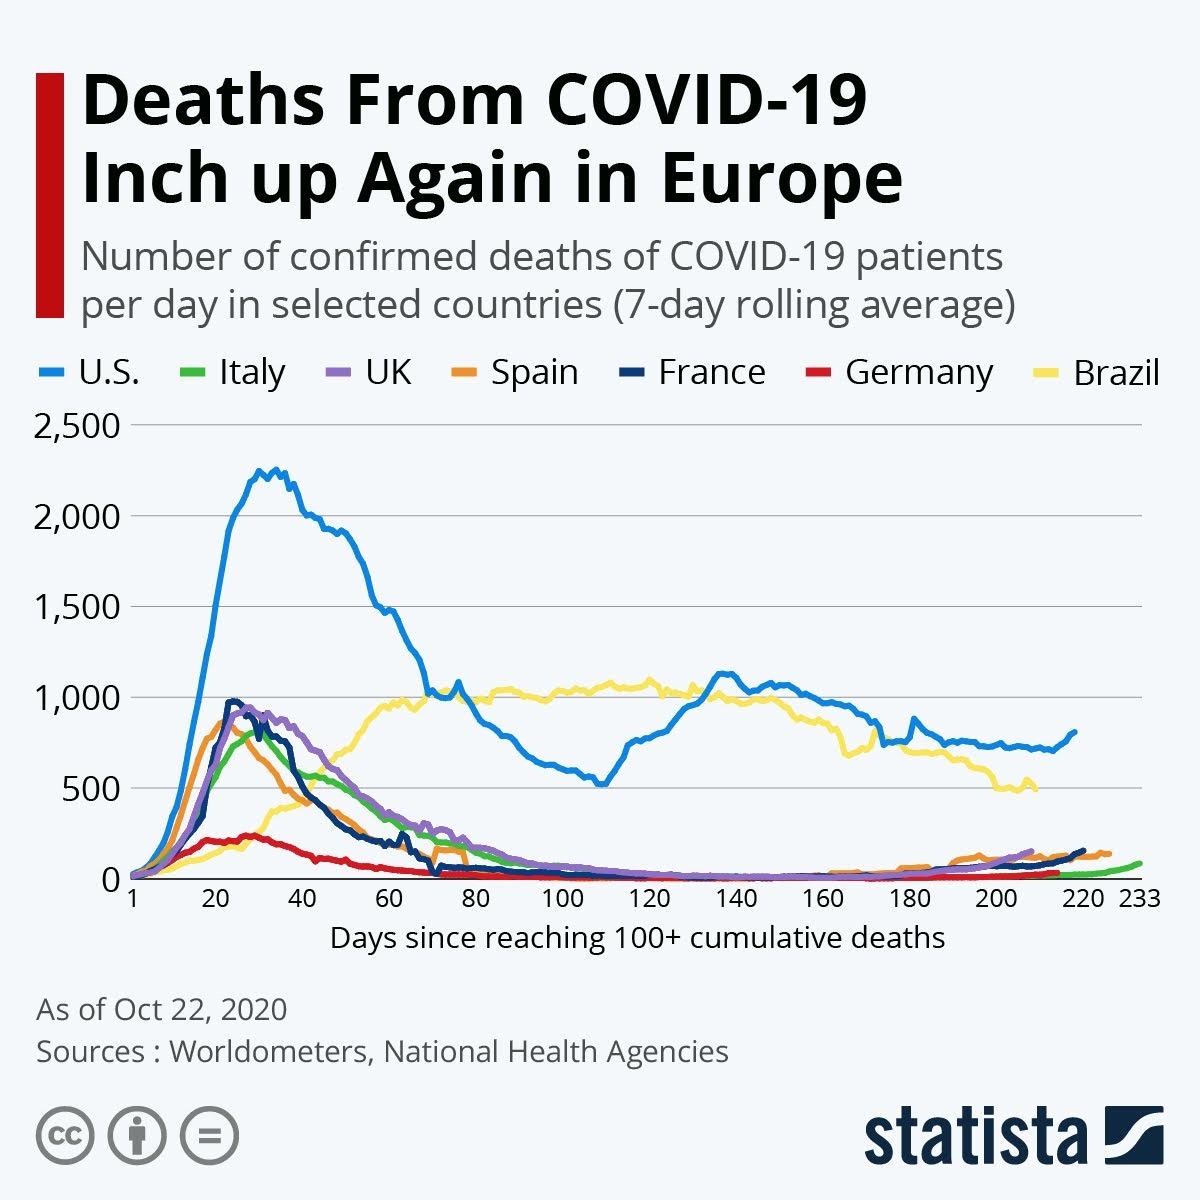 deaths-from-covid-19-inch-up-again-in-europe-infographic